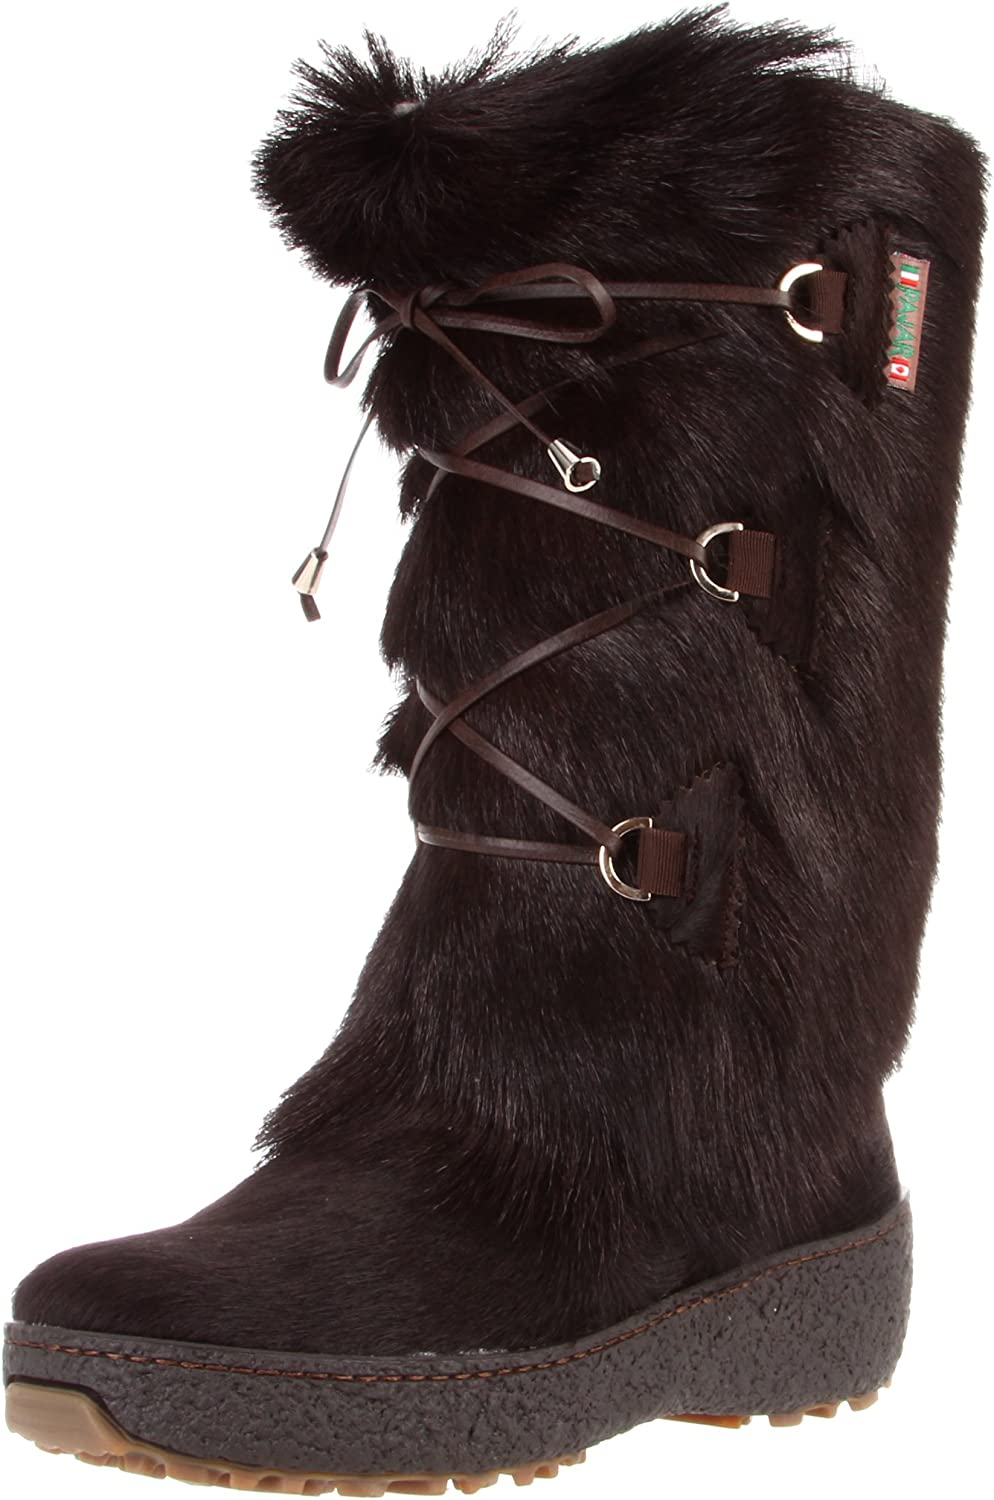 Pajar Women's Davos Waterproof Fur Wool Lined All-Weather Boots